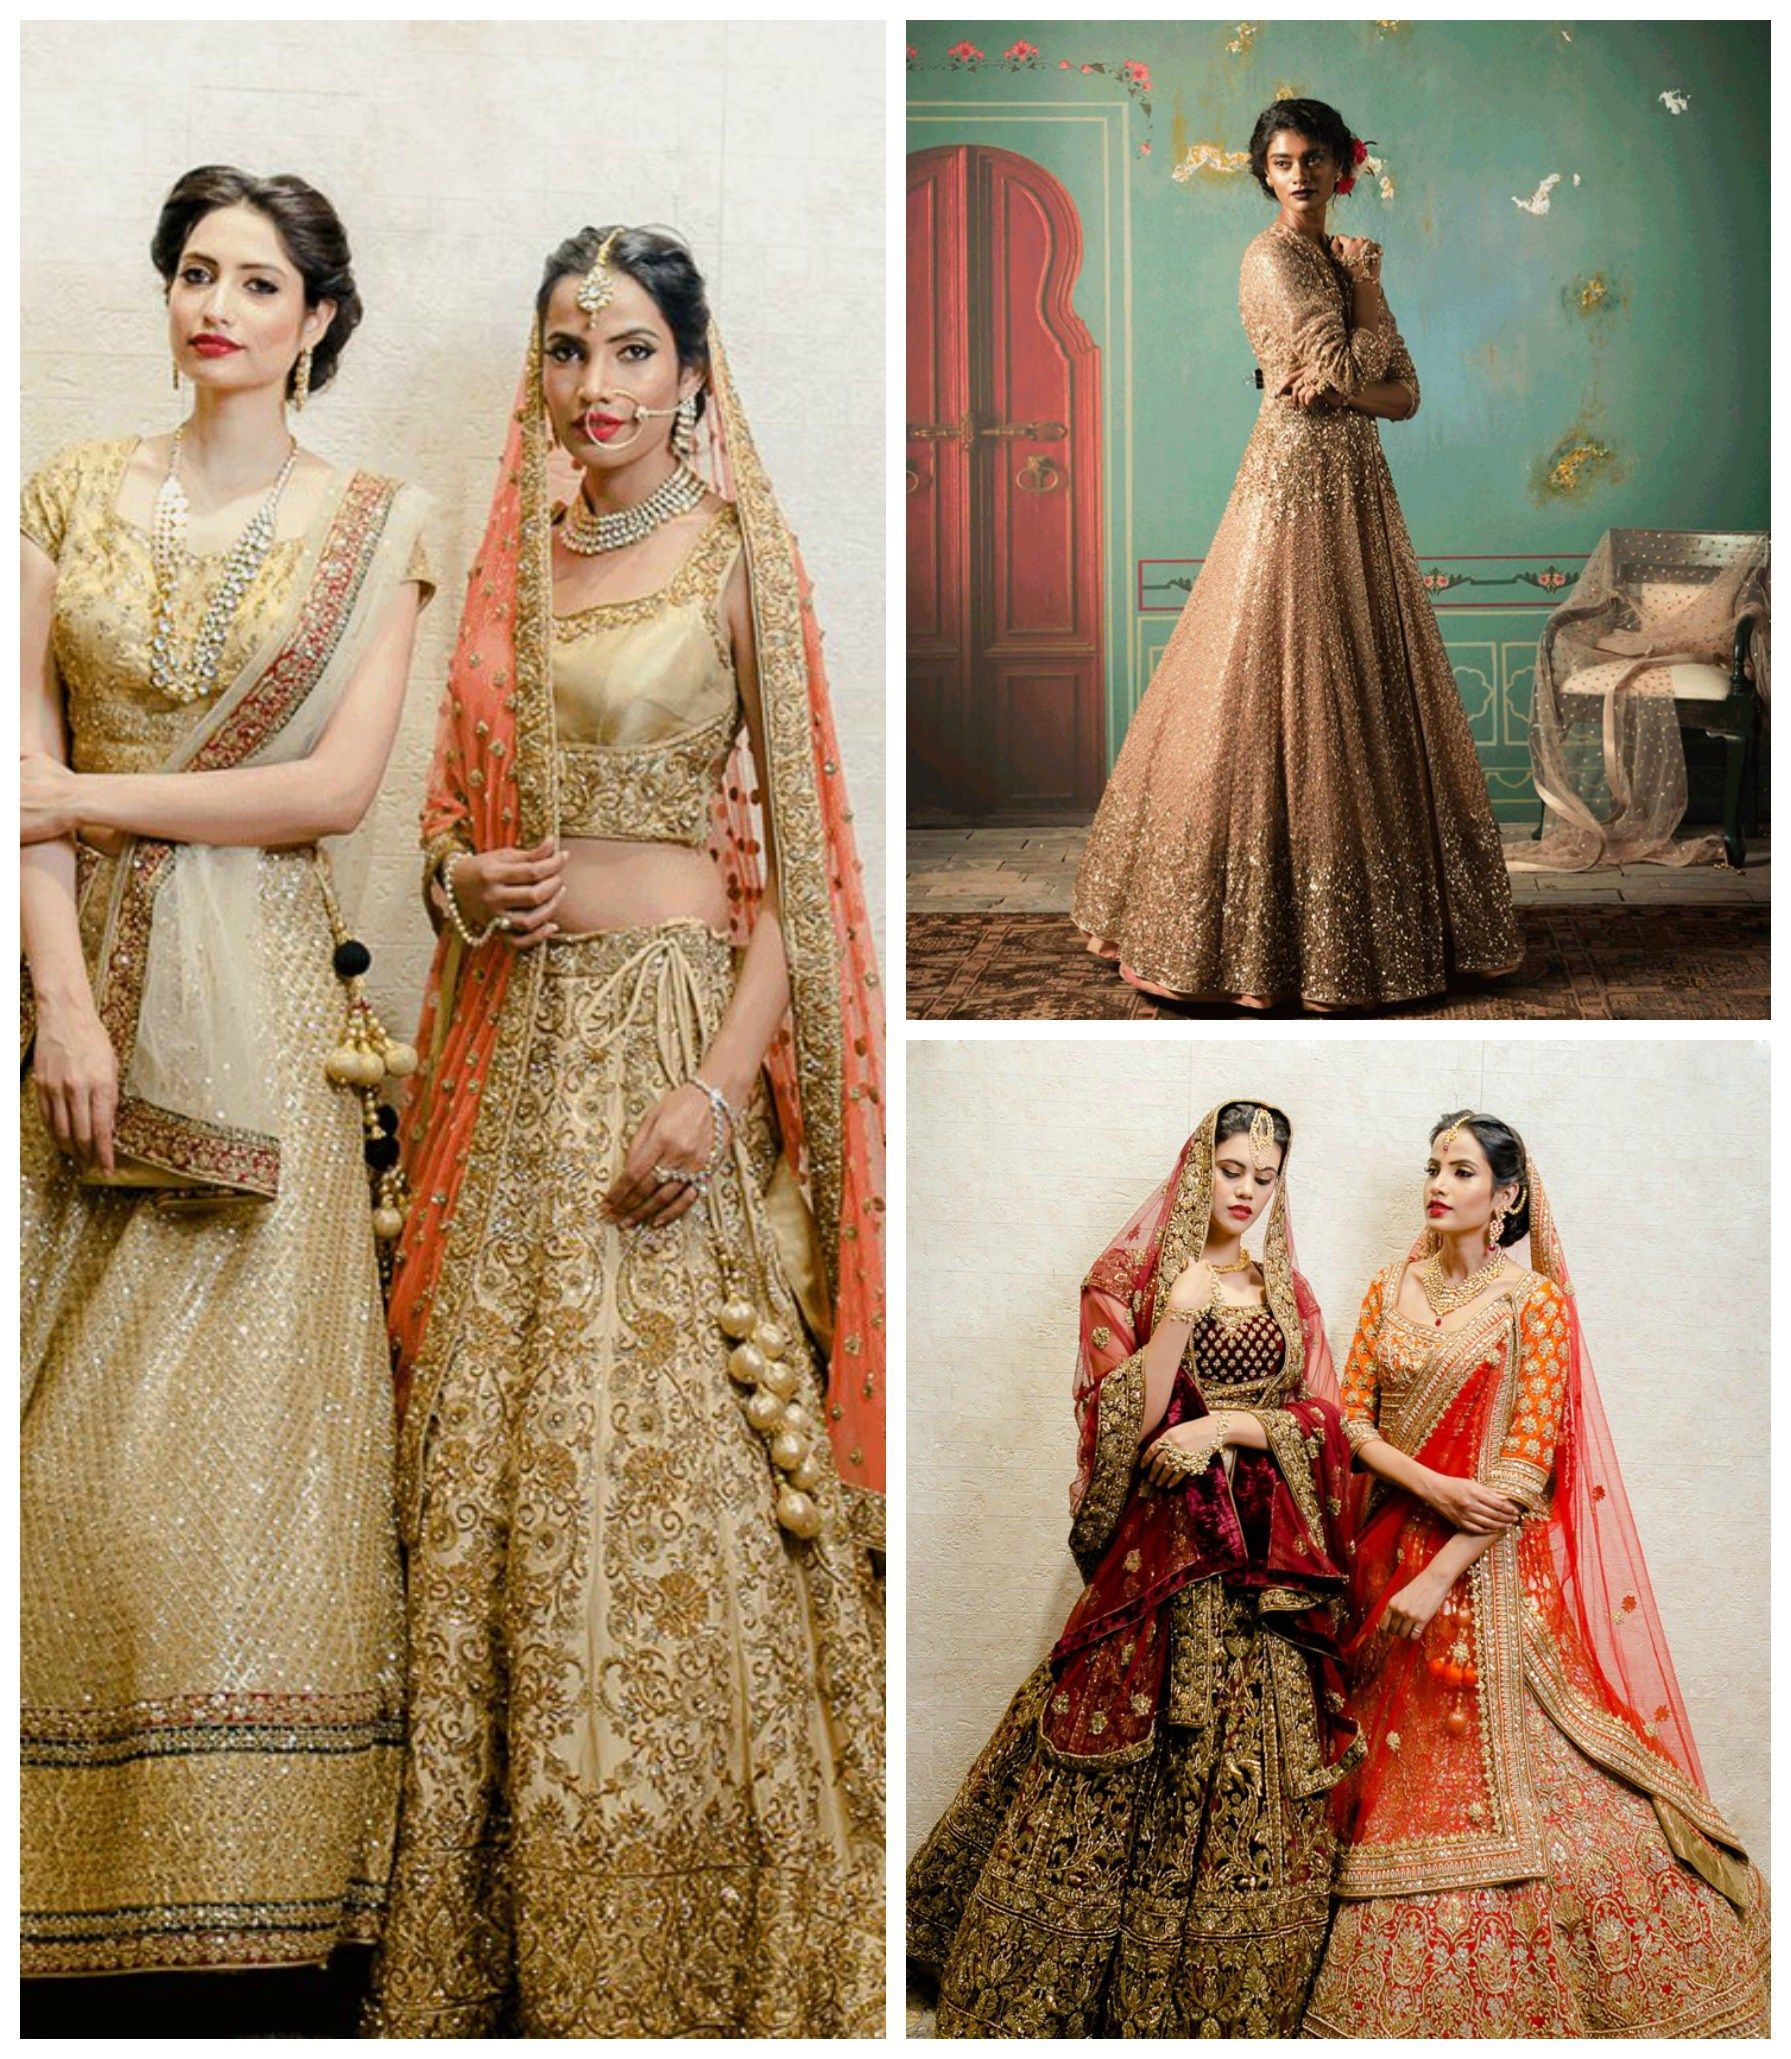 95789dd036 CTC Mall has some amazing bridal lehengas and gowns this wedding season.  Check out my complete review about the store CTC Mall by clicking on the  image.